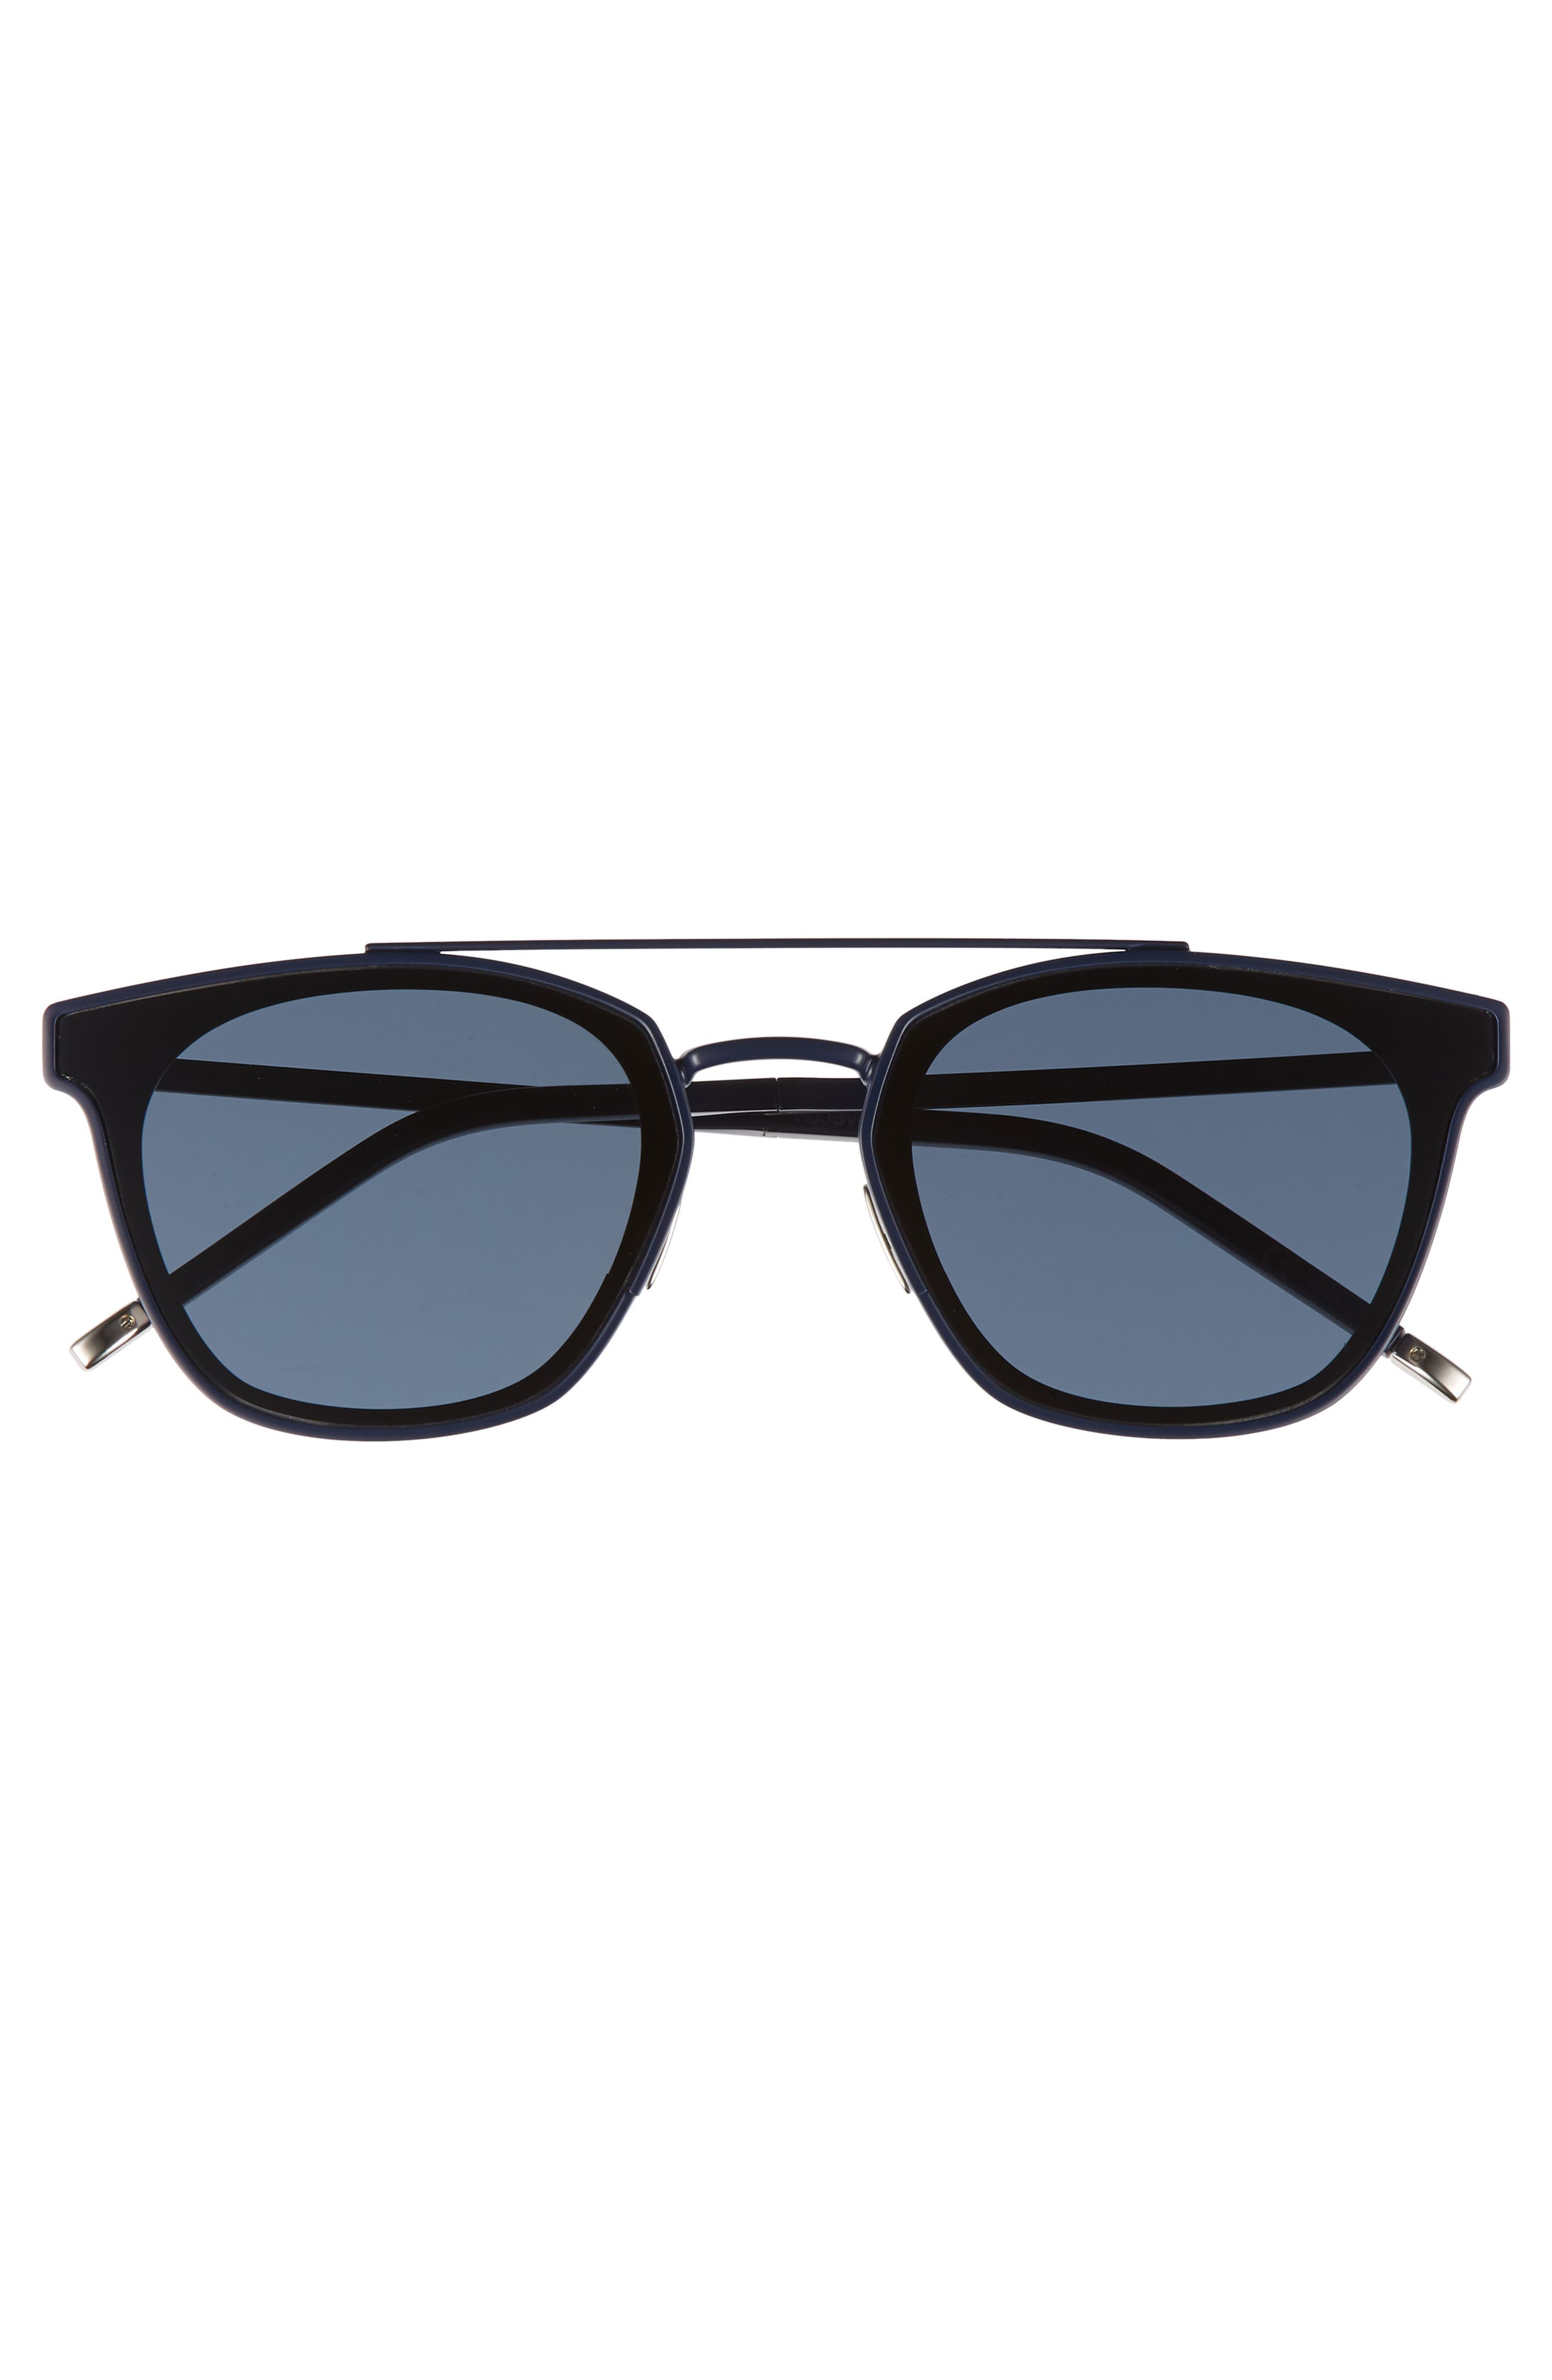 SL 28 61mm Polarized Sunglasses,                             Alternate thumbnail 2, color,                             Blue